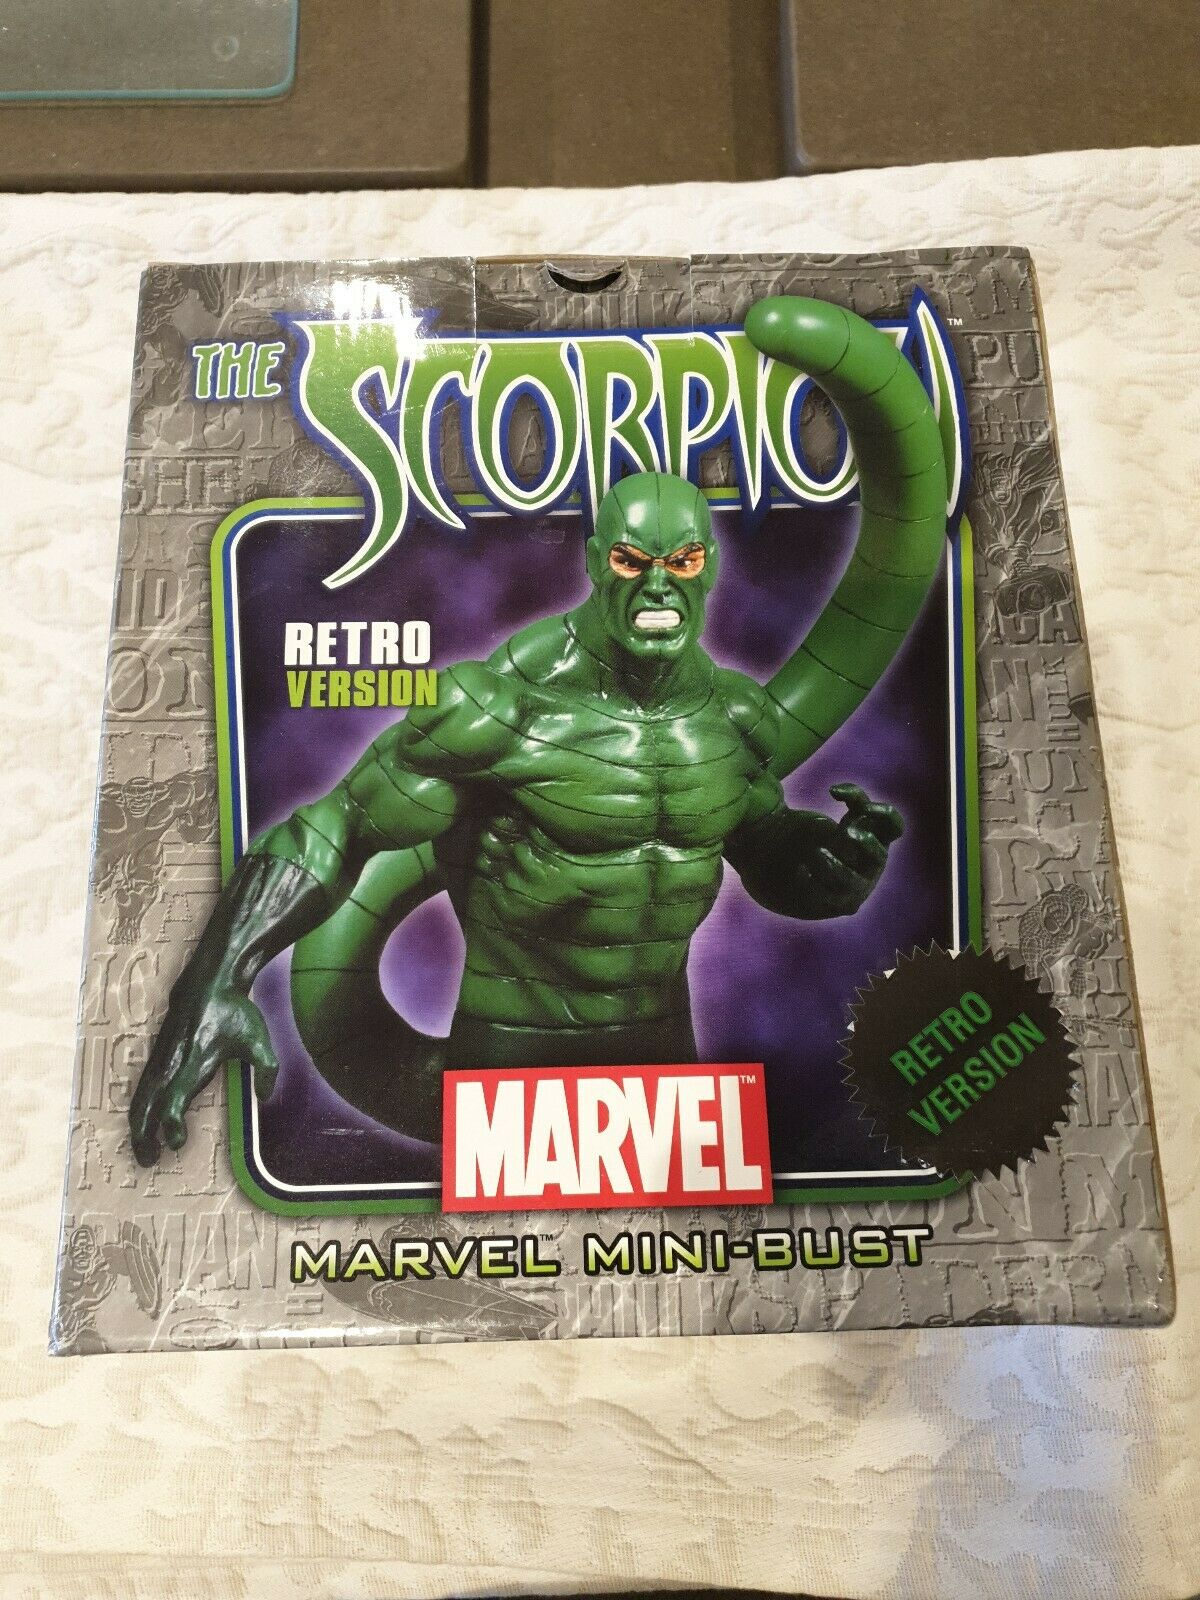 2008 Bowen Designs Marvel Spideruomo SCORPION Retrò versione mini autobusto 06521500